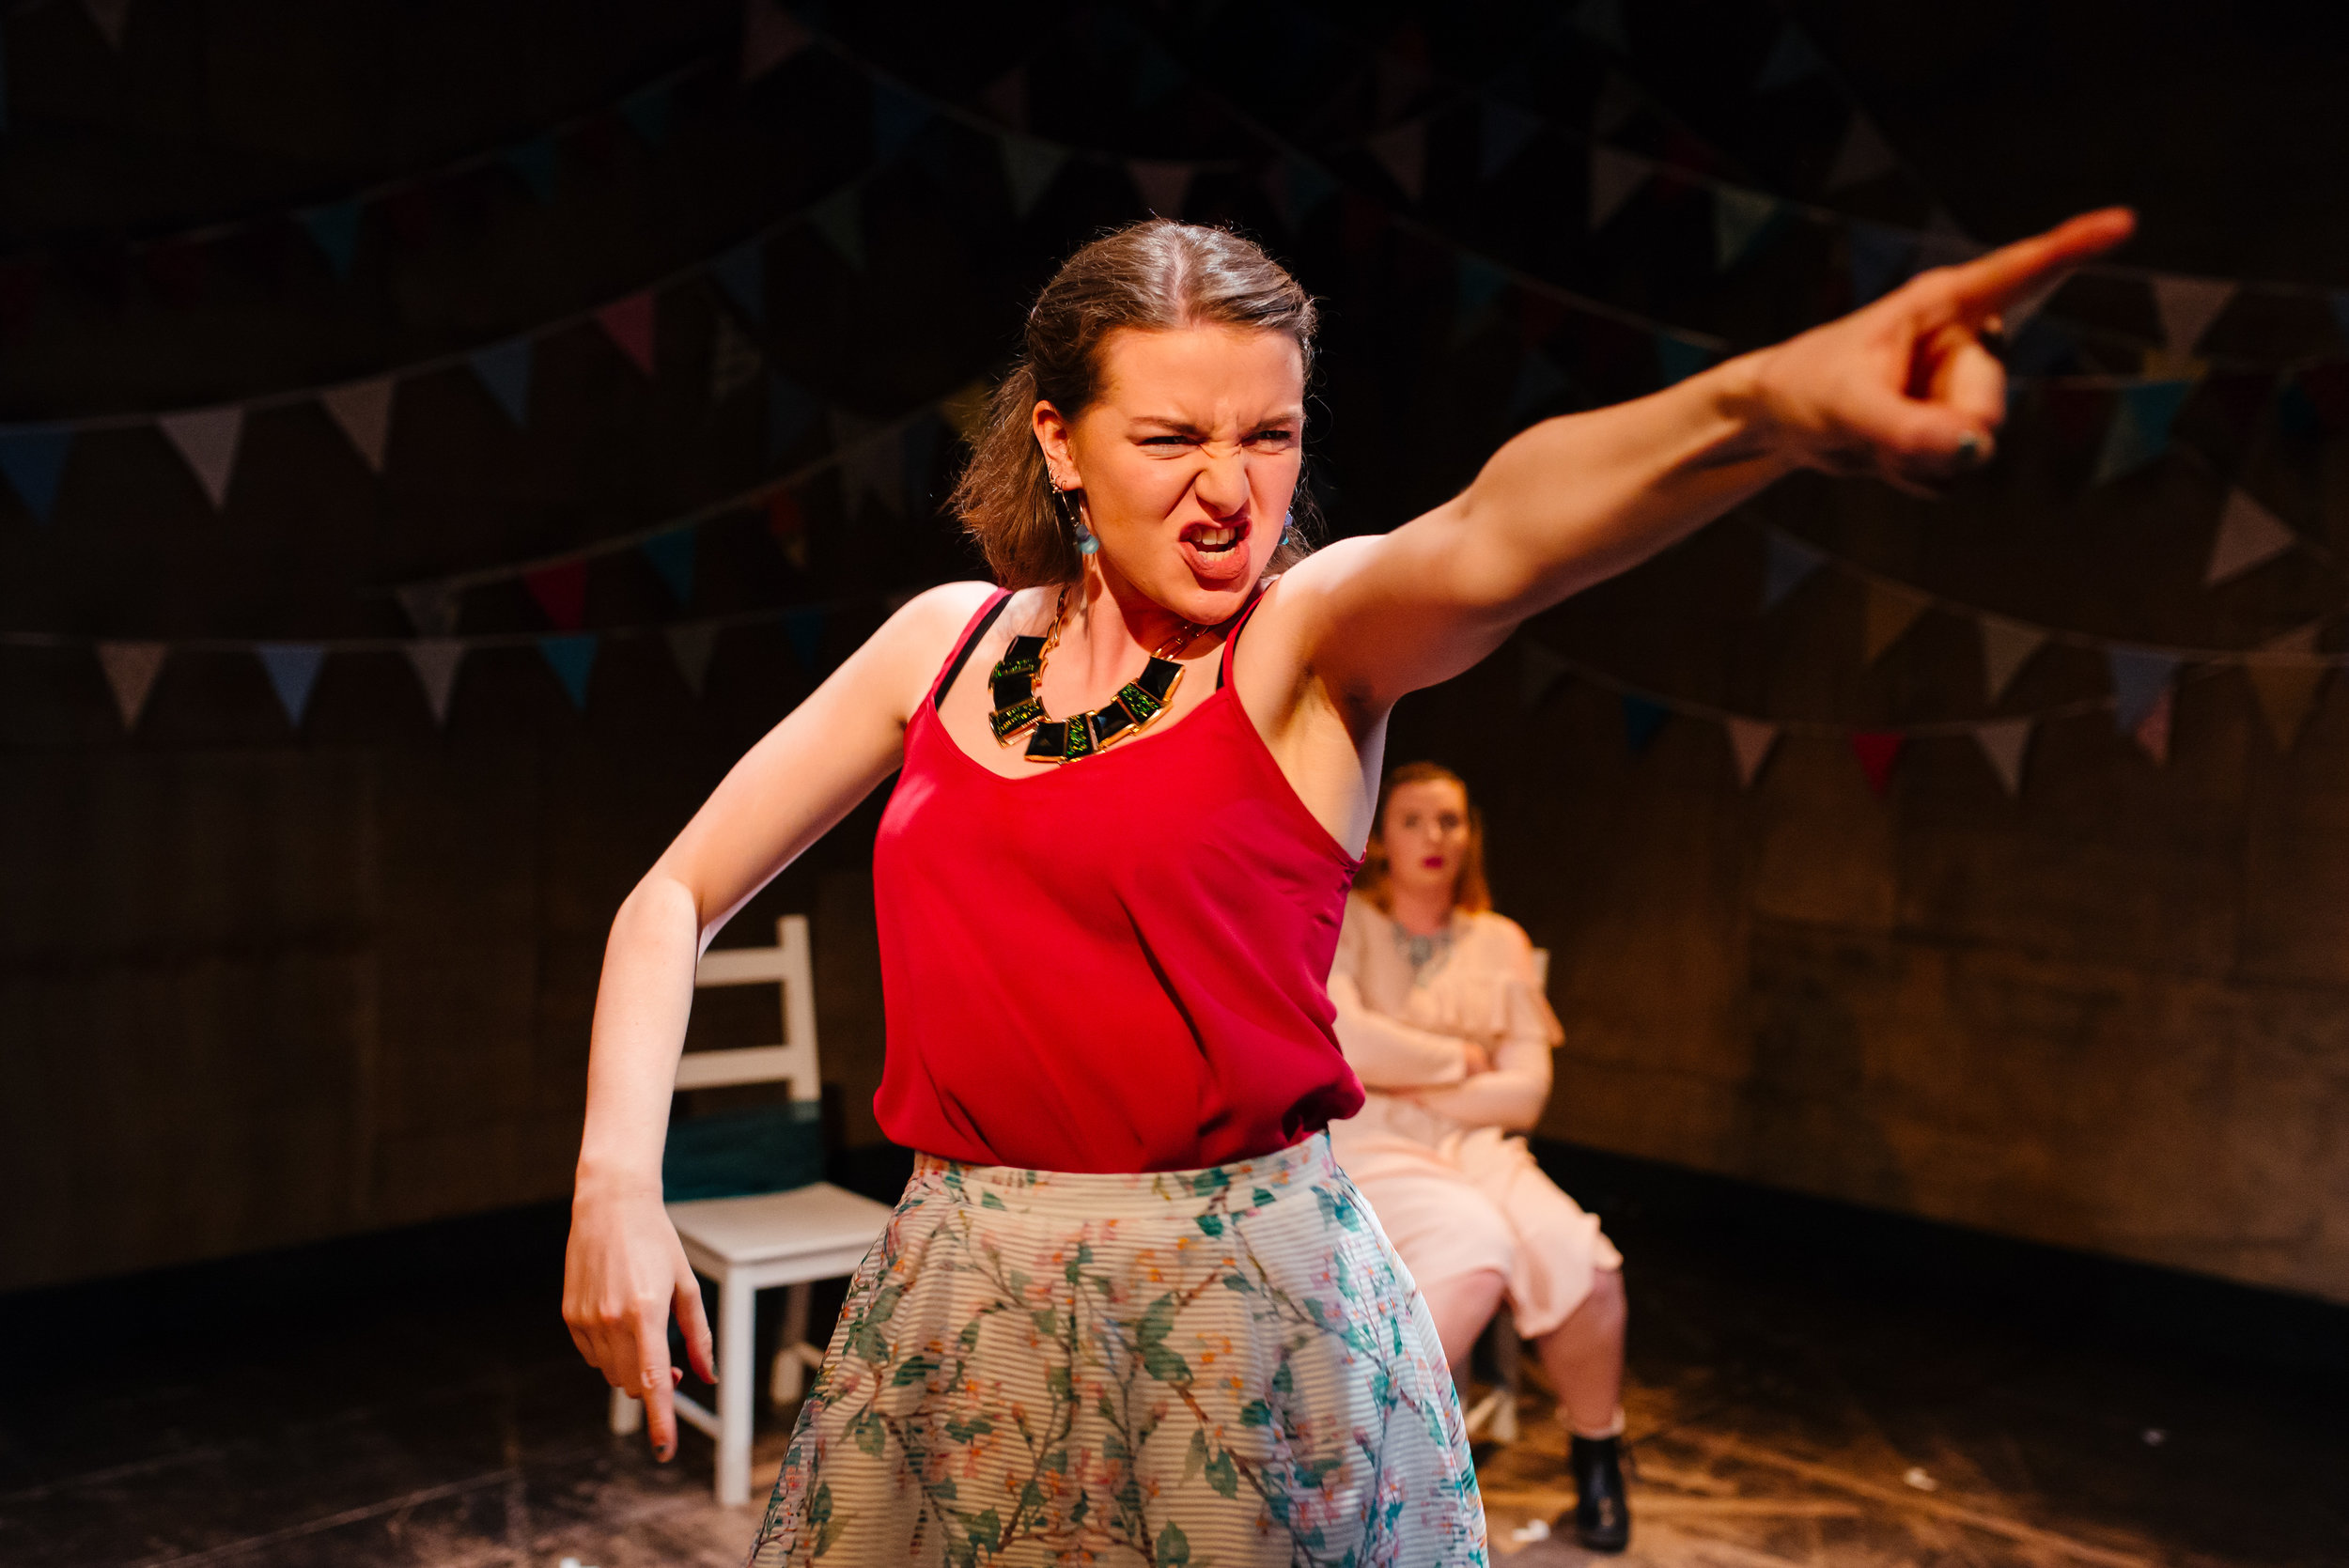 Said and Done - Sugarscratch Theatre - Photographer Jack Offord-2185.jpg